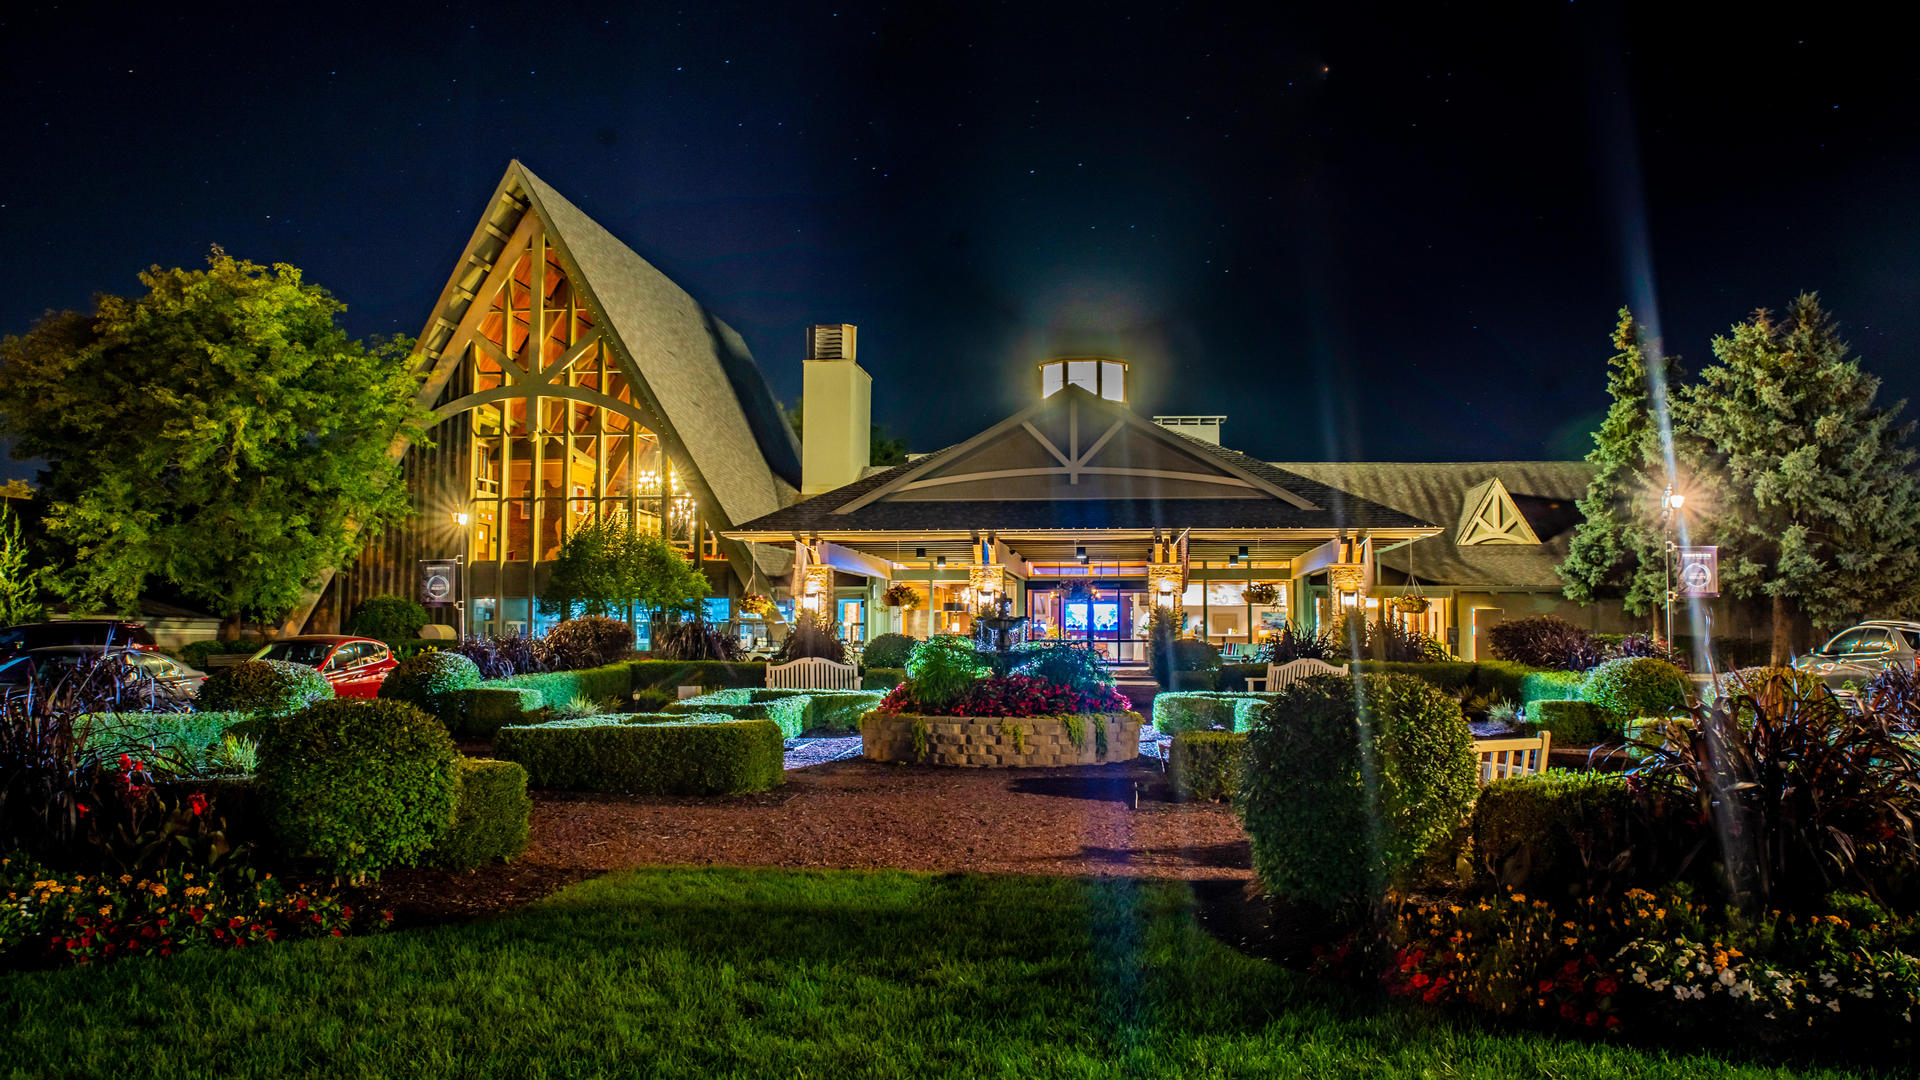 Abbey Resort at Night